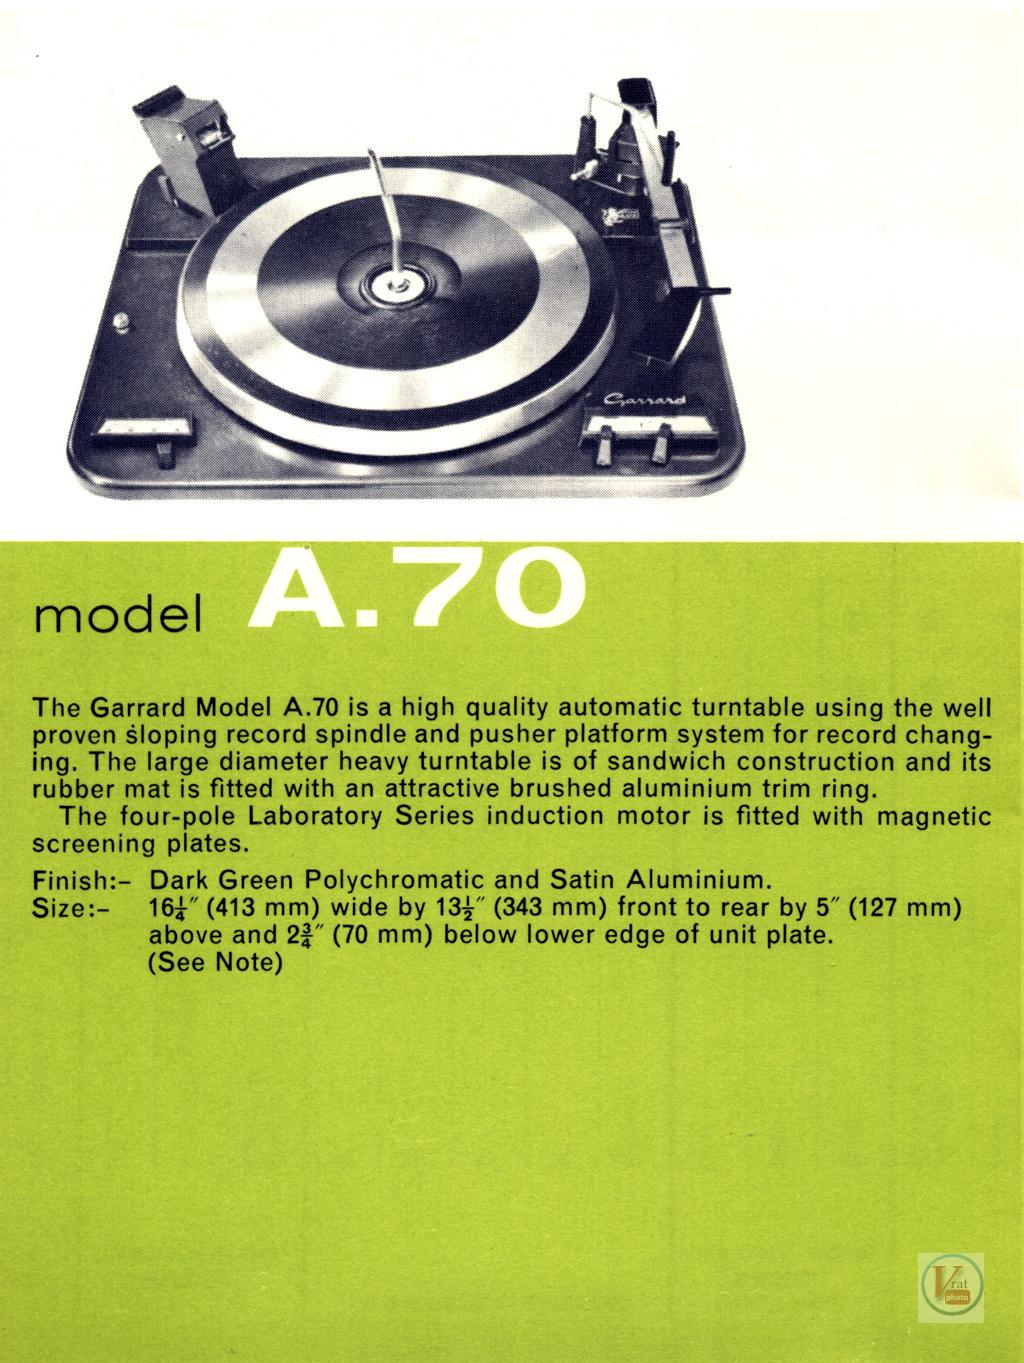 Garrard-401 Turntable 53